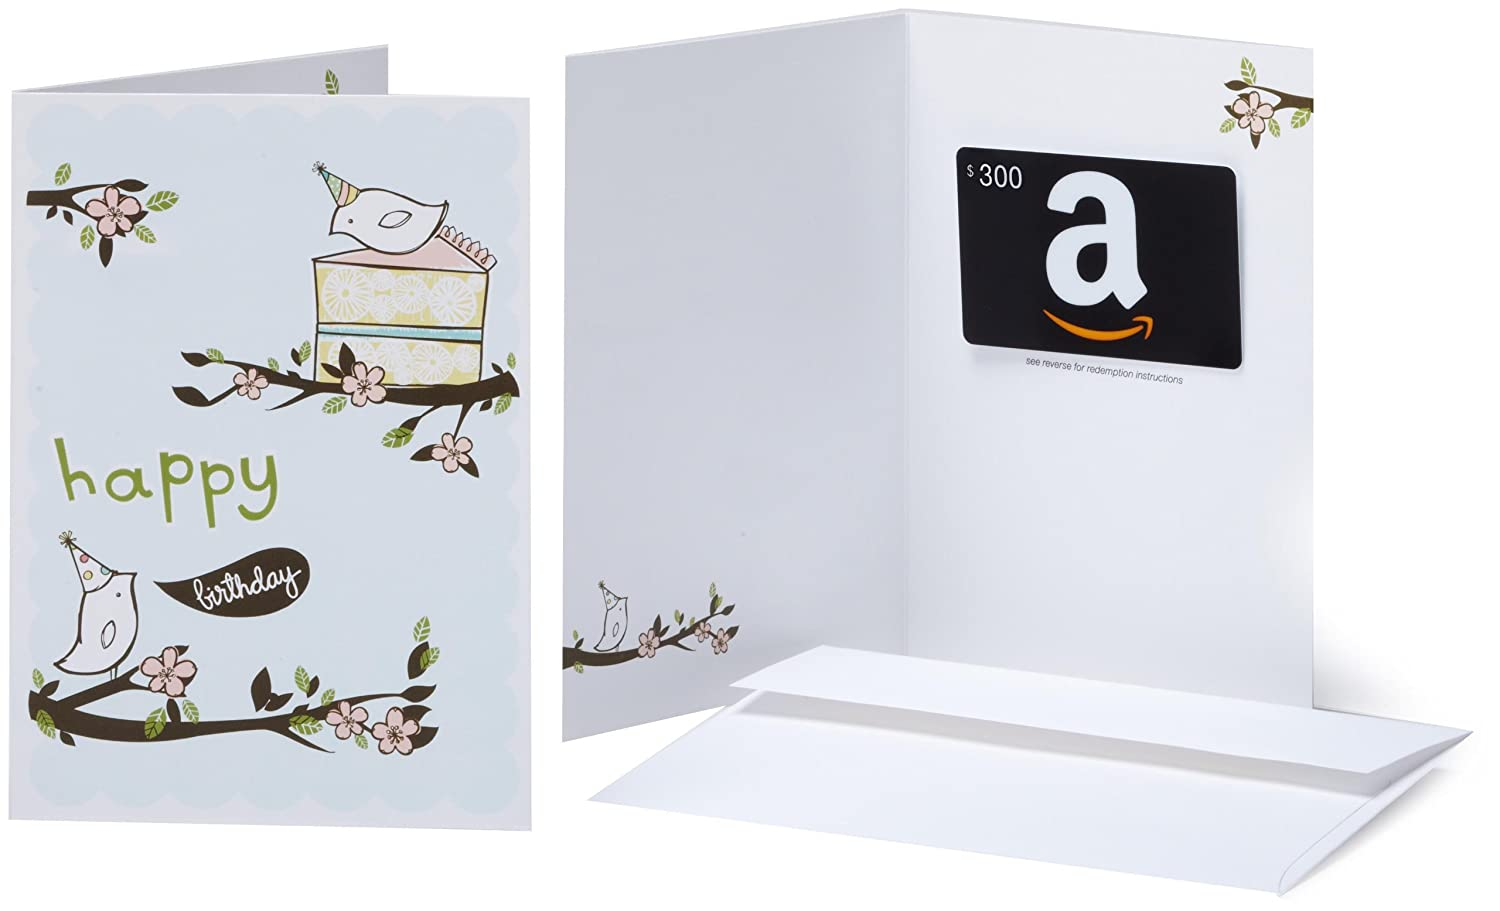 .com Gift Card in a Greeting Card